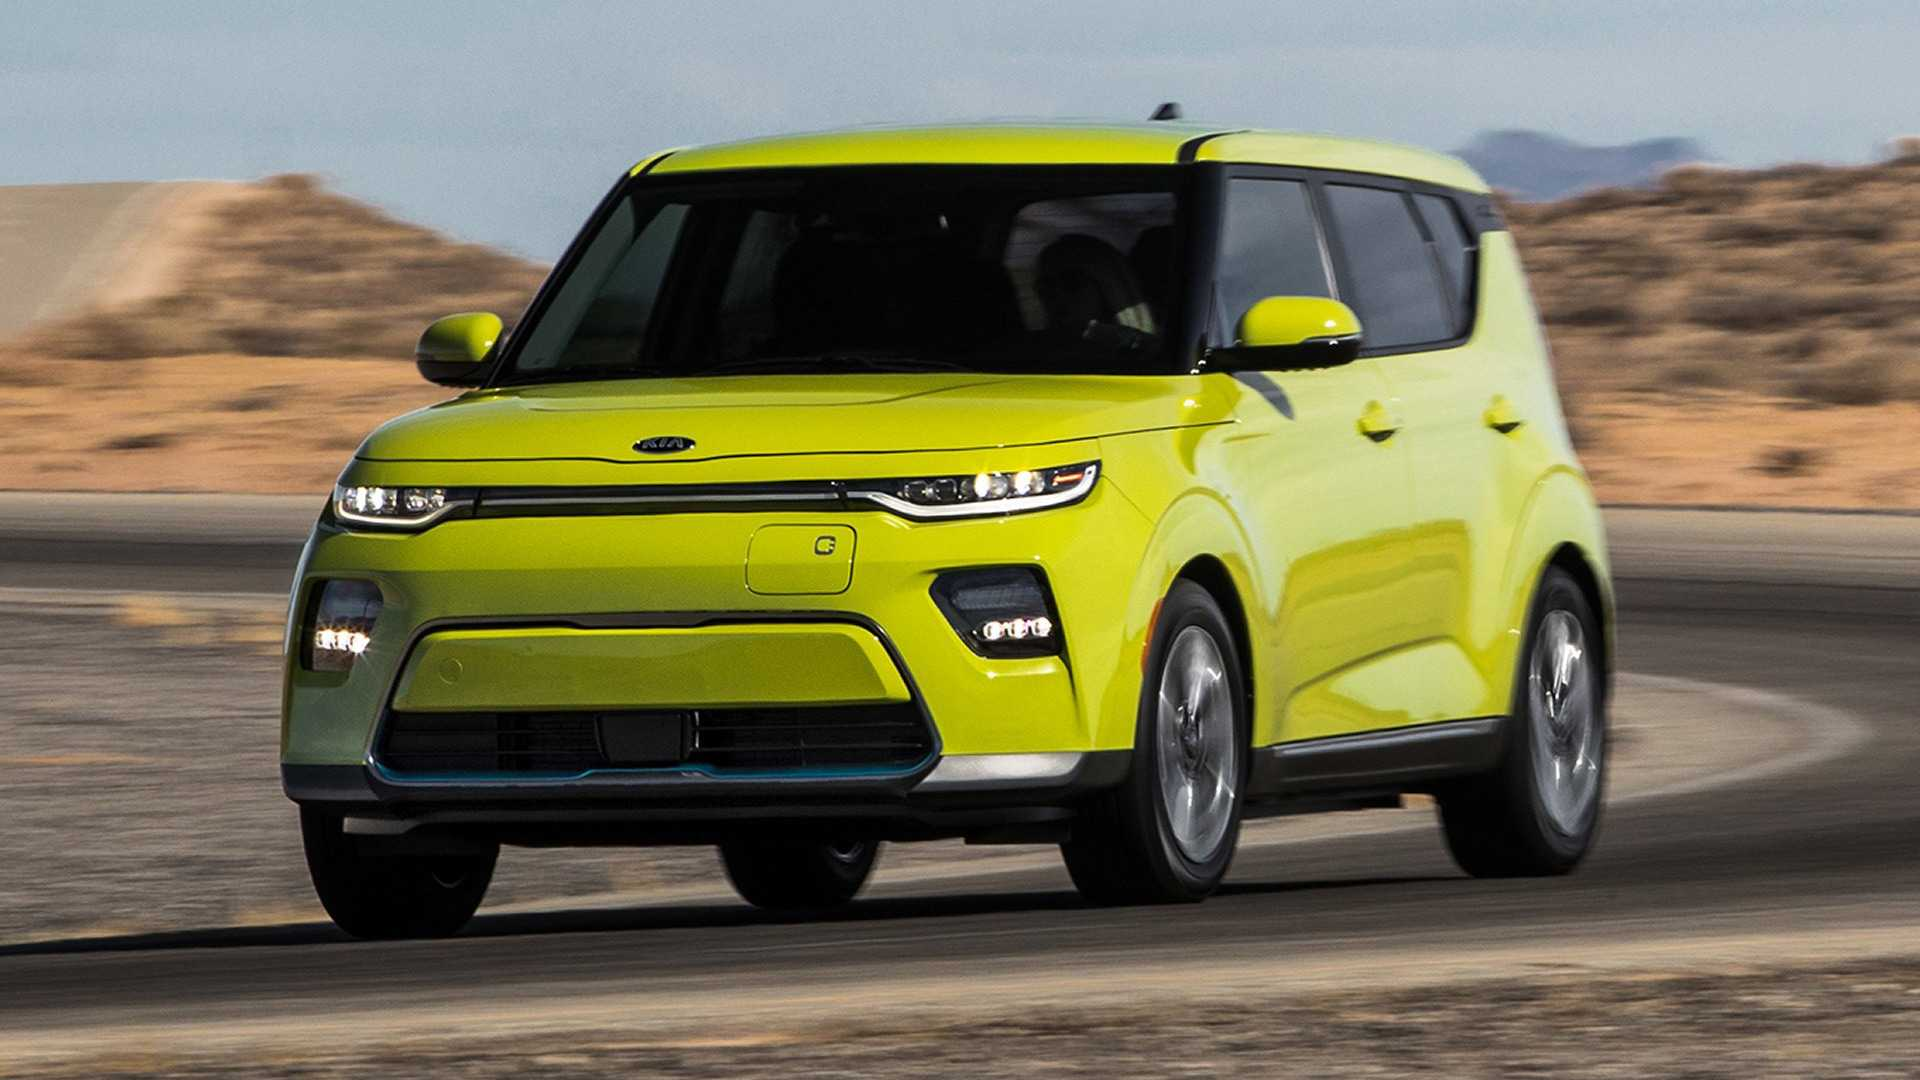 all new 2020 kia soul electric spotted in new colors all new 2020 kia soul electric spotted